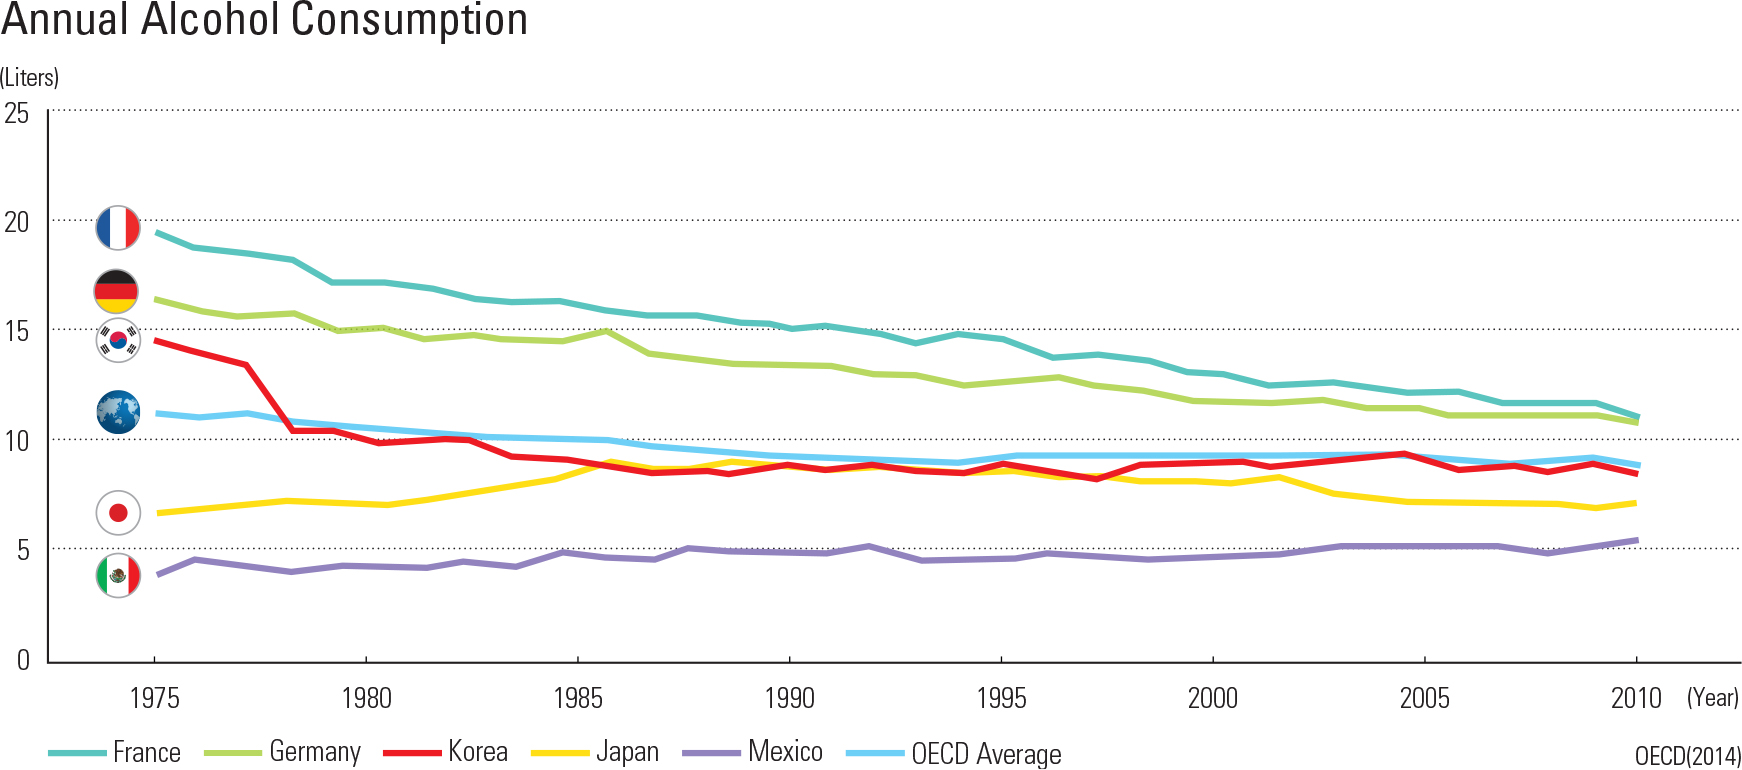 """Annual Alcohol Consumption<p class=""""oz_zoom"""" zimg=""""http://imagedata.cafe24.com/us_3/us3_234-4_2.jpg""""><span style=""""font-family:Nanum Myeongjo;""""><span style=""""font-size:18px;""""><span class=""""label label-danger"""">UPDATE DATA</span></span></p>"""